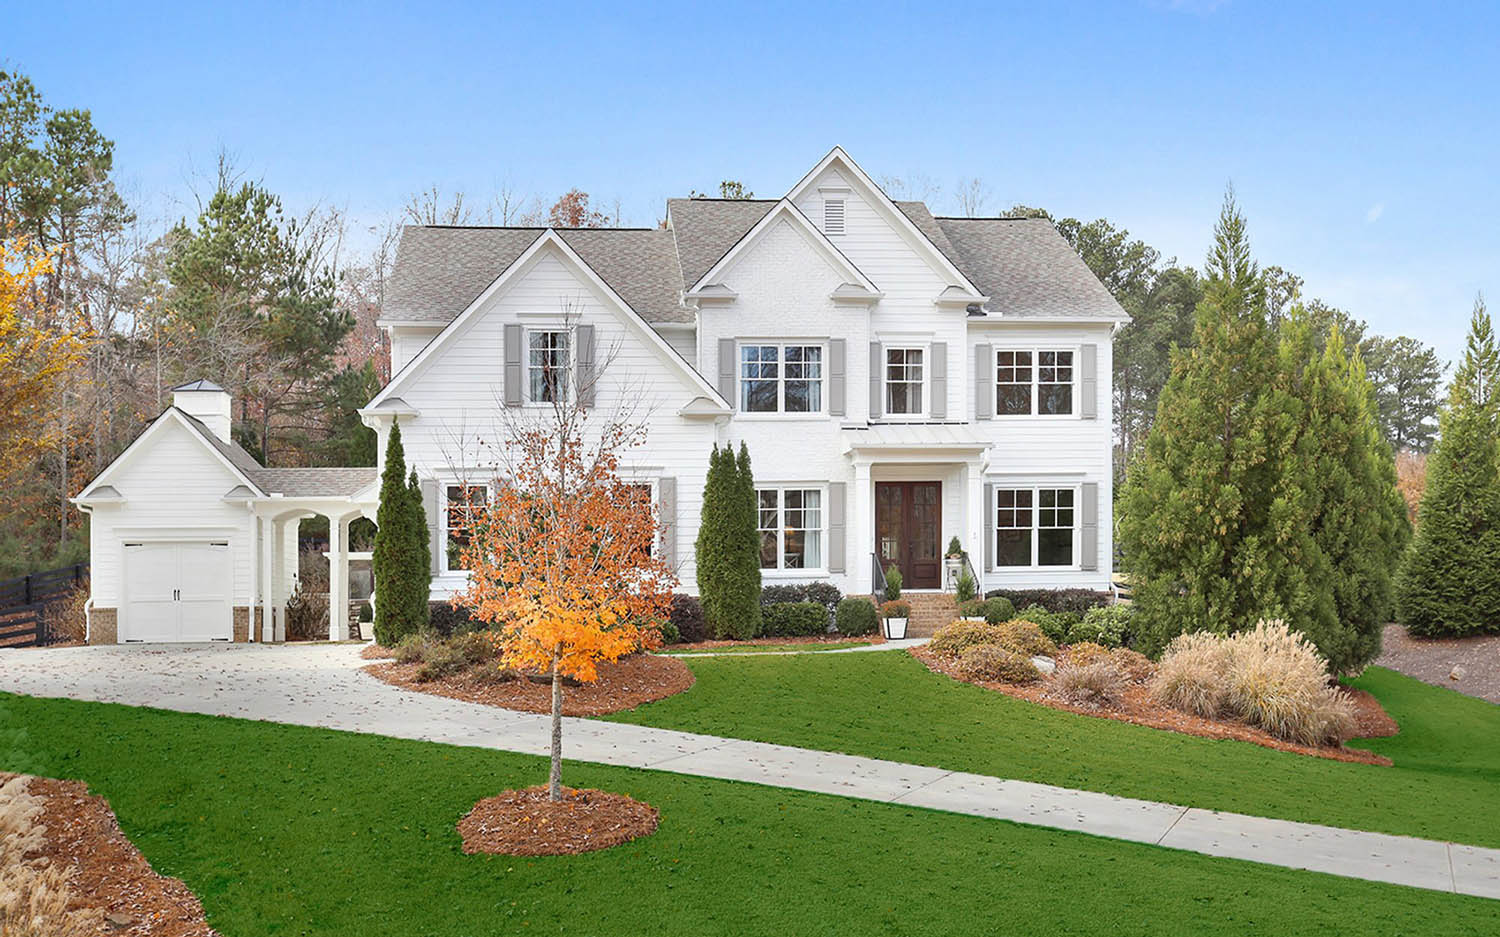 white brick house with white vinyl siding, gray shutters, red brick veneer and porch, stained wood front door.